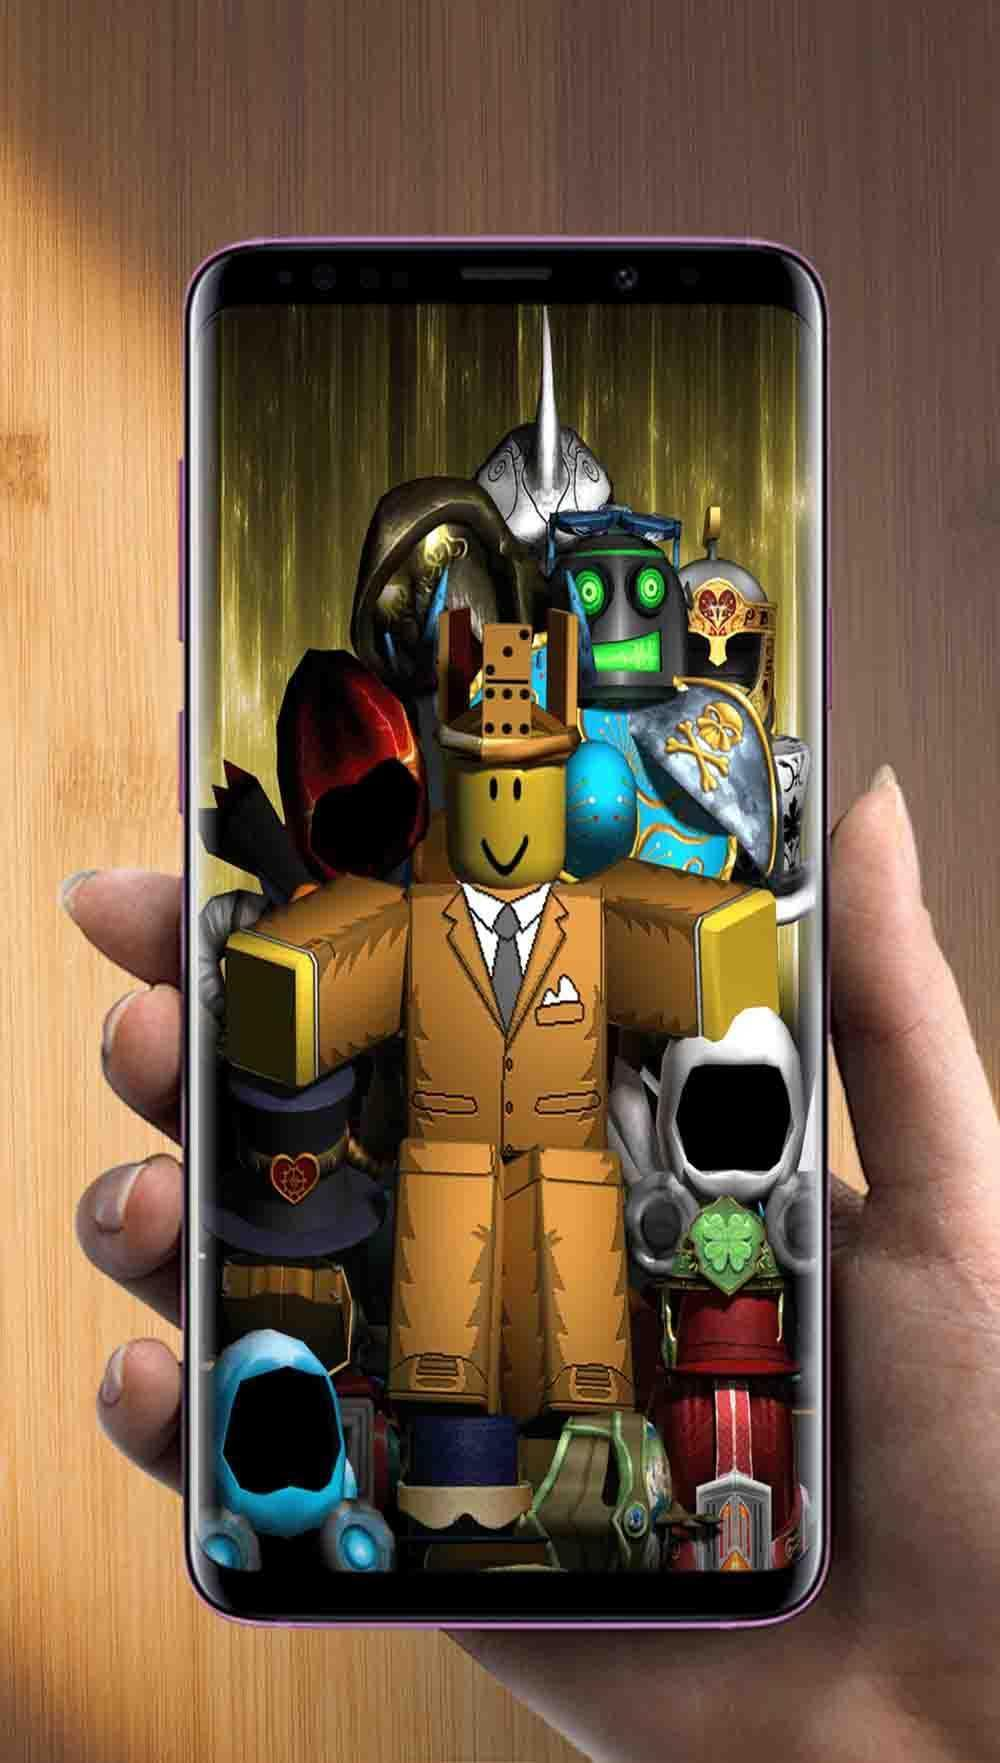 Roblox Wallpapers New Hd For Android Apk Download